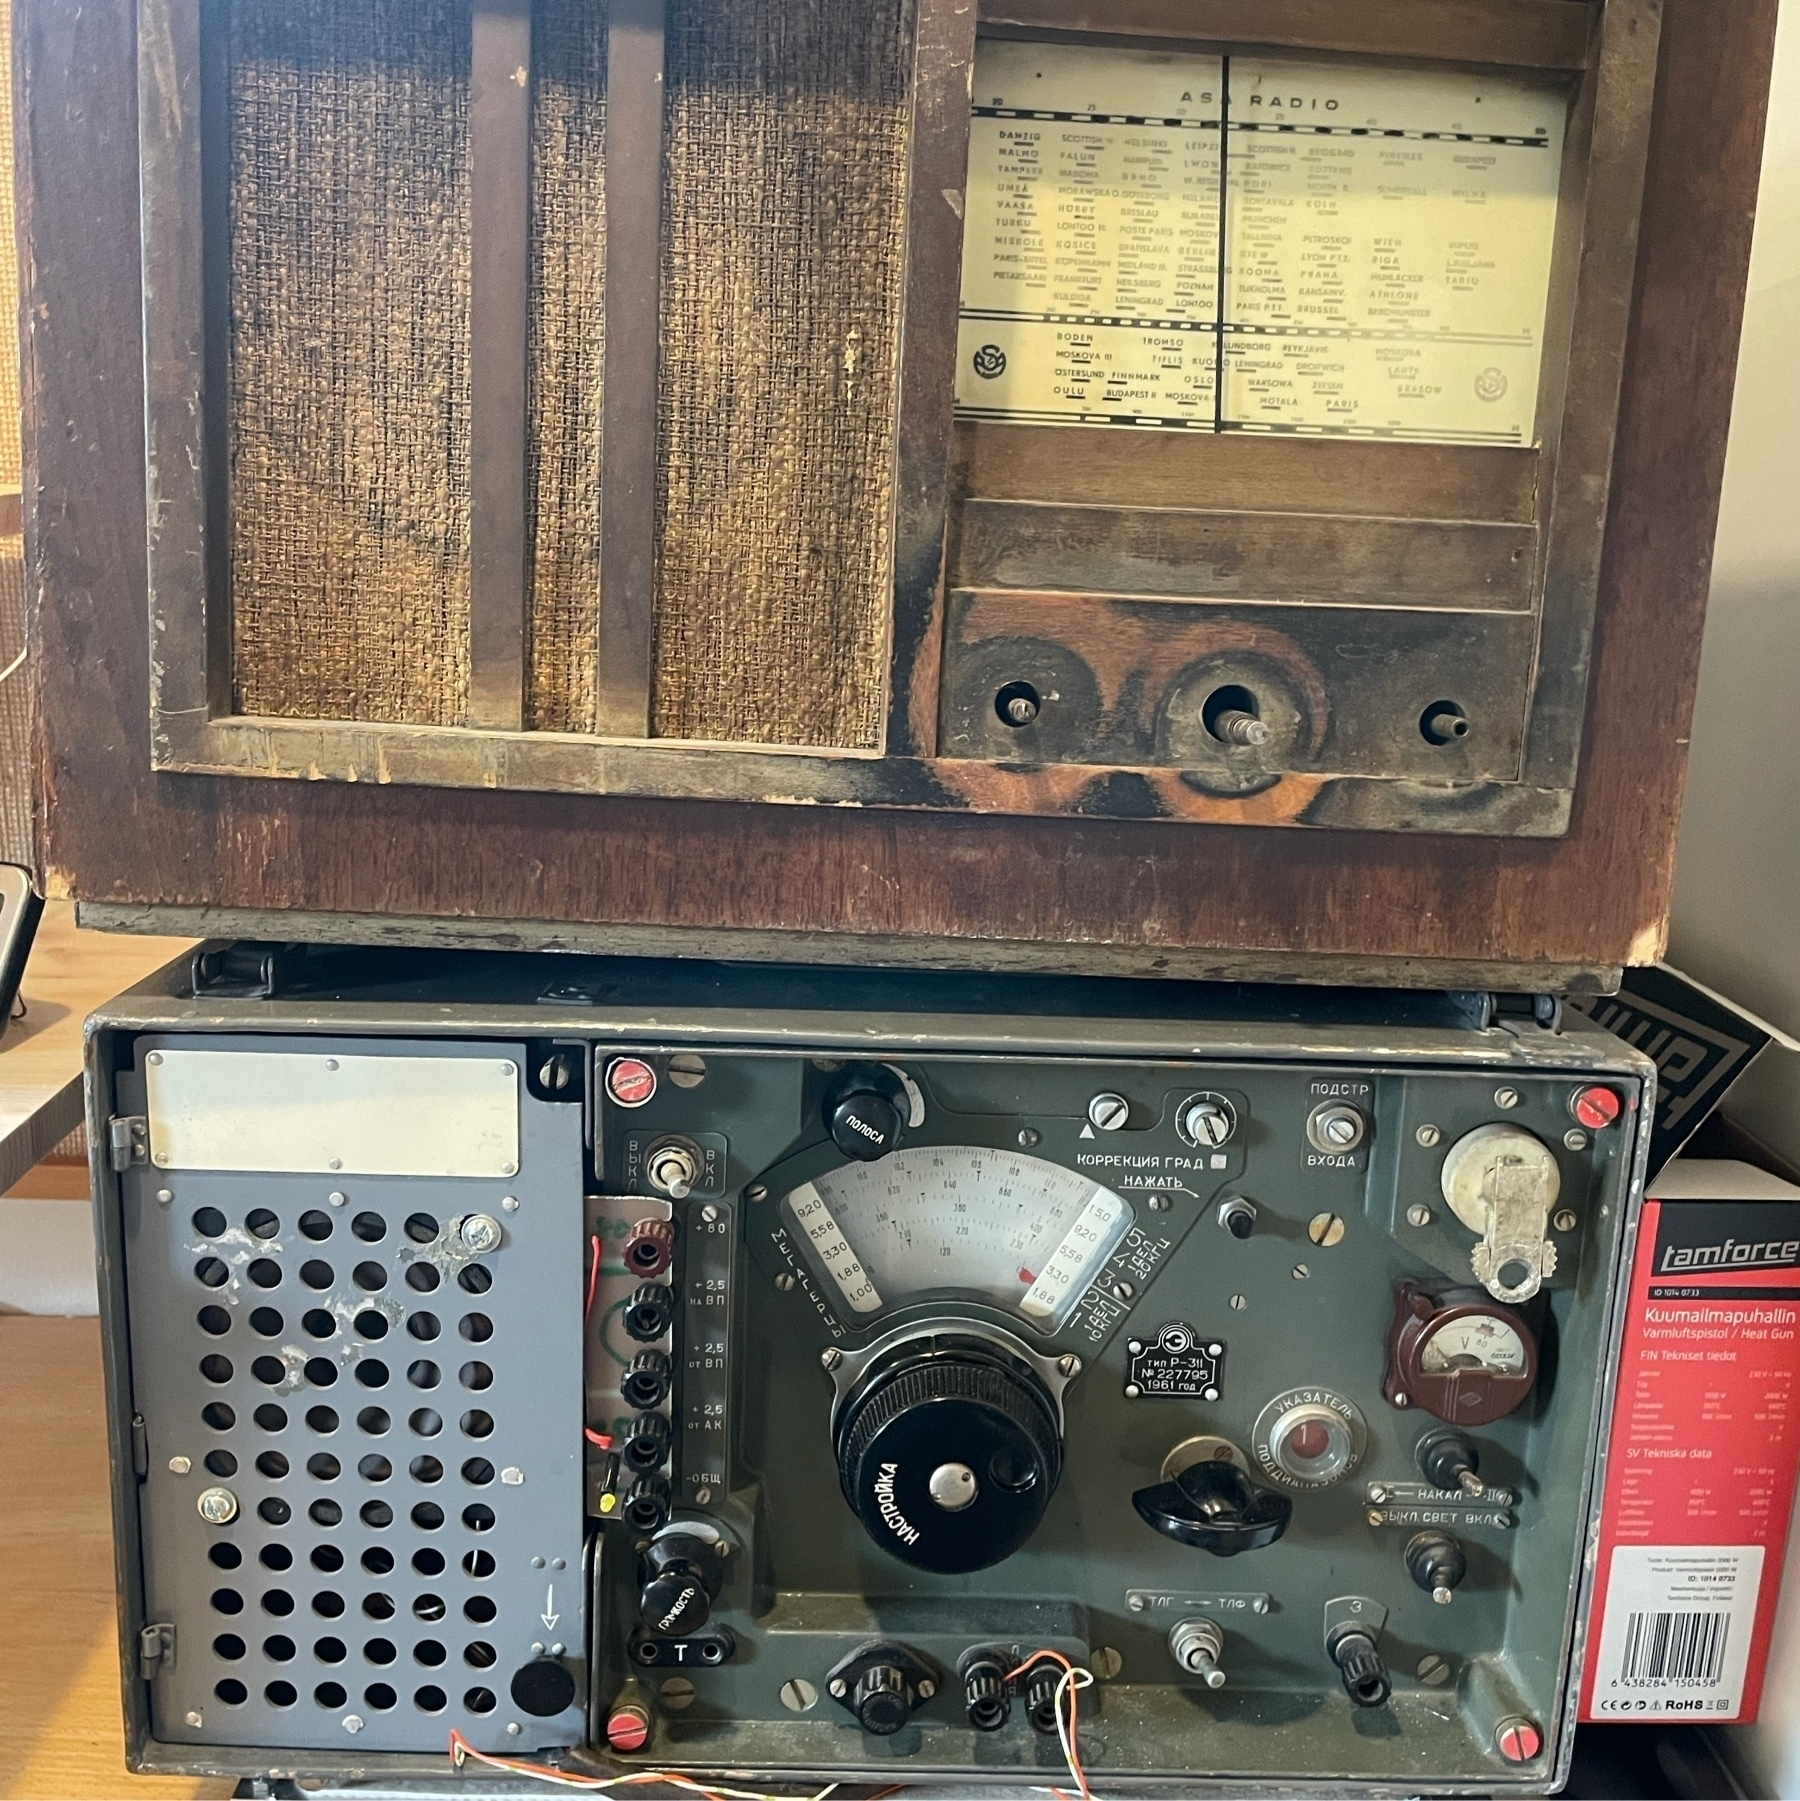 two old radios on top of each other, lower one with cyrillic texts in controllers